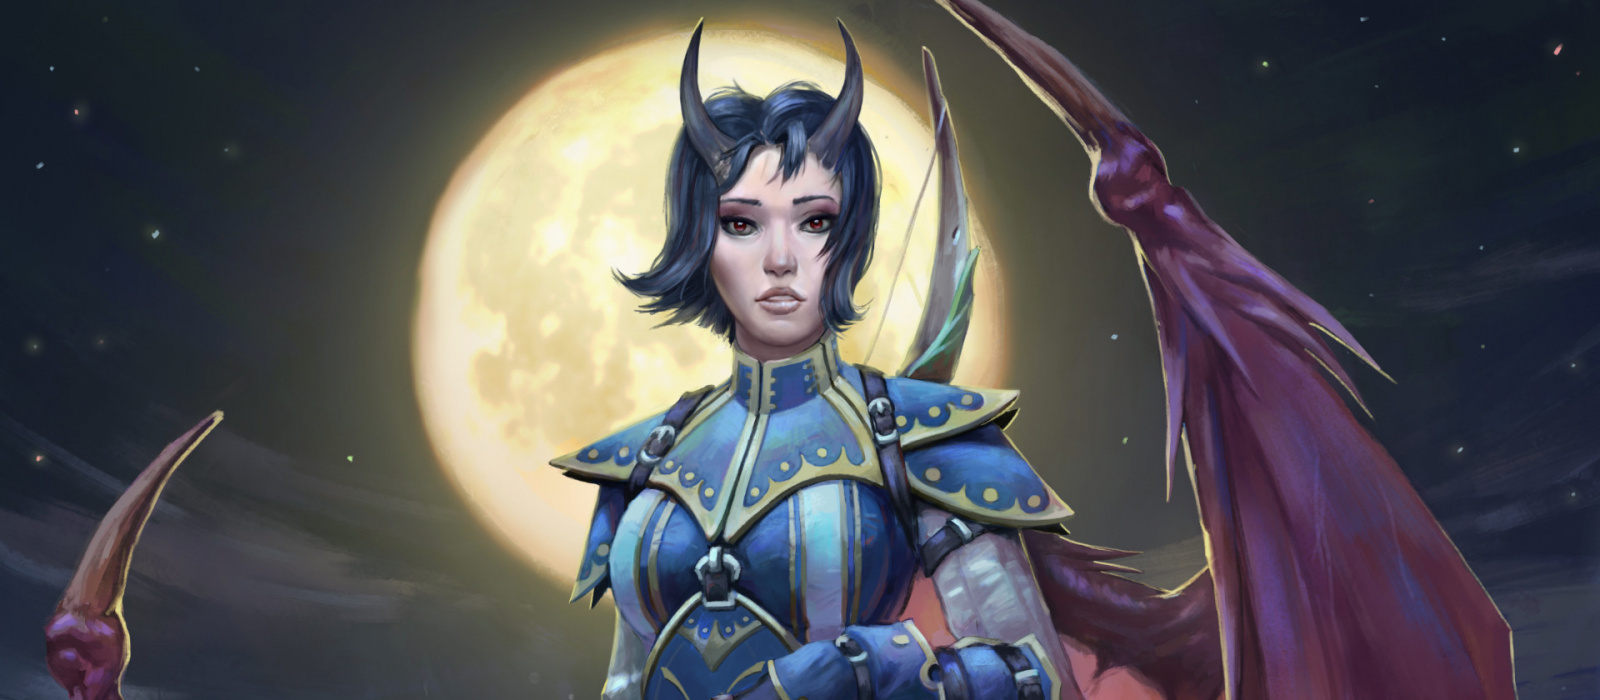 How to add (import) your portrait to Pathfinder: Wrath of the Righteous